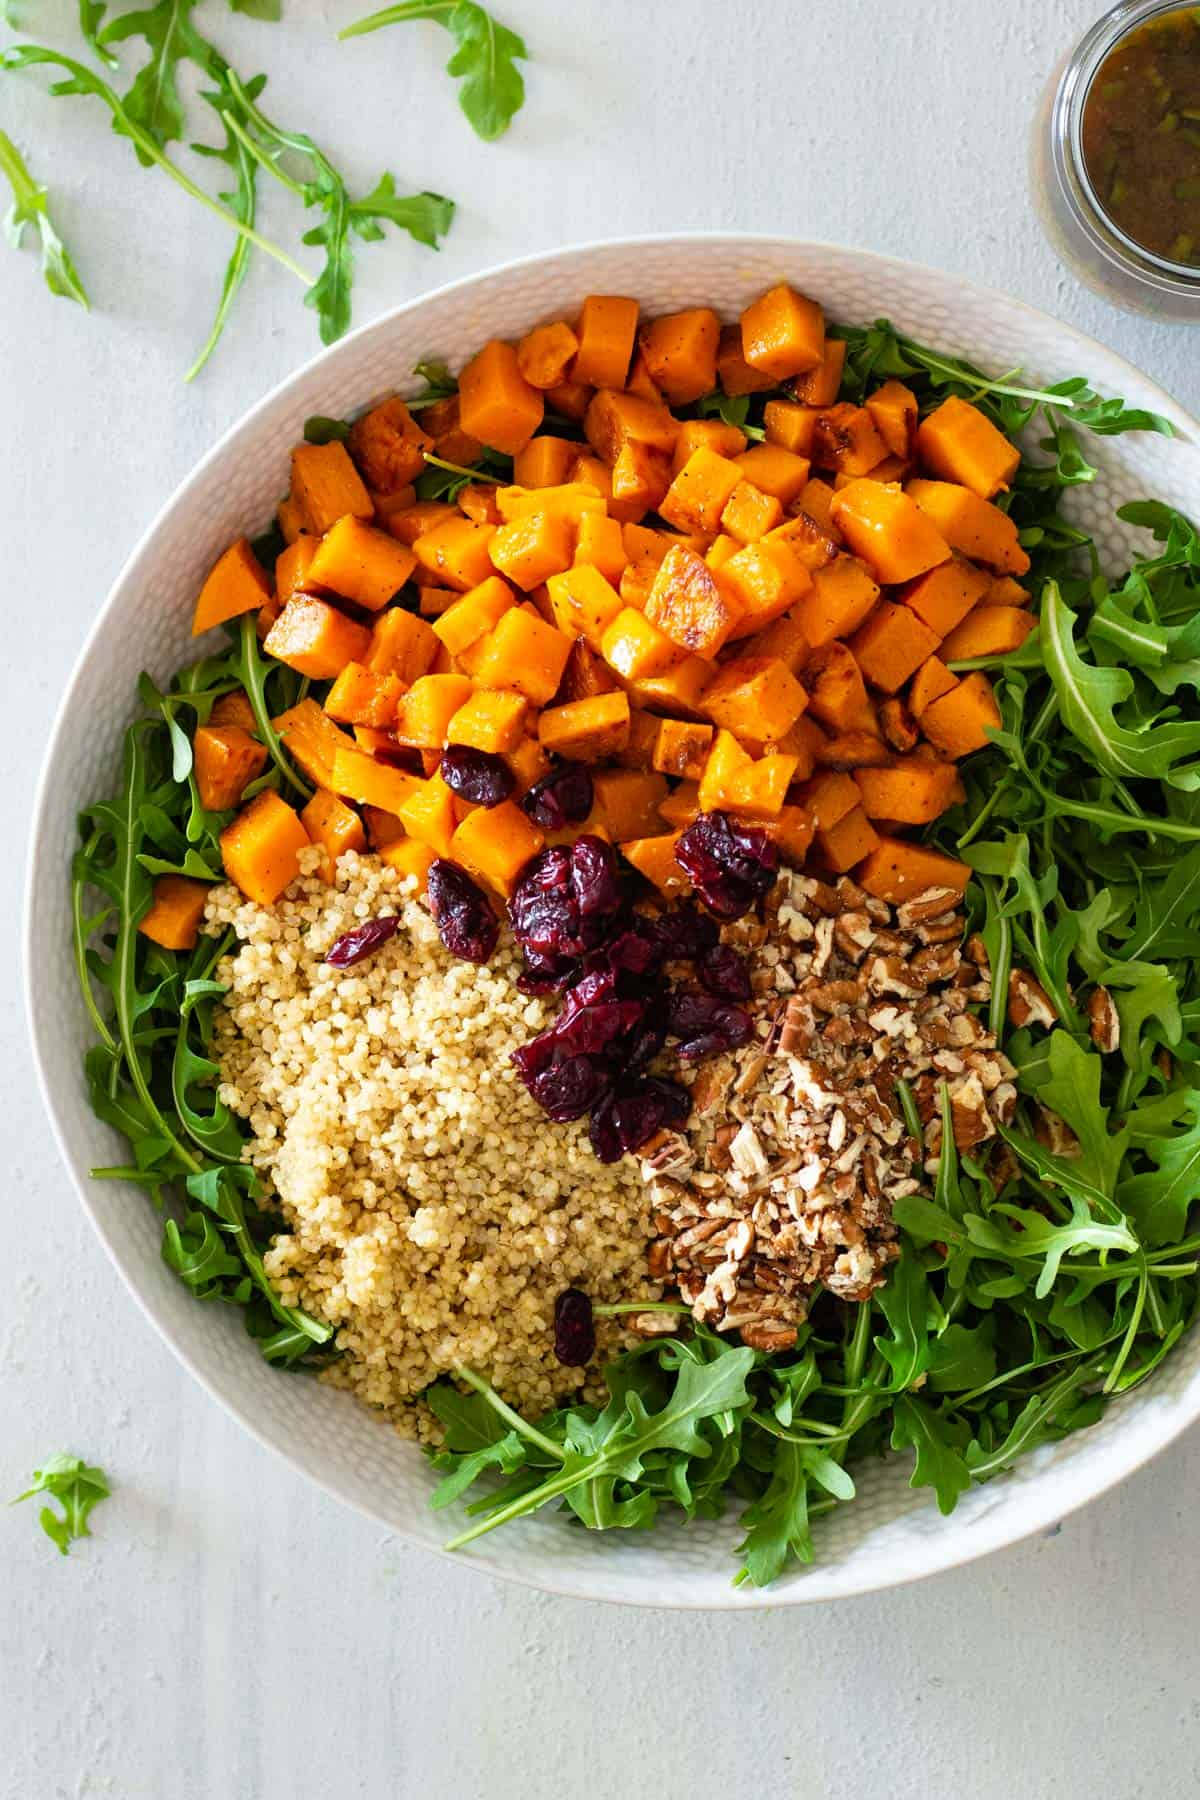 Salad bowl with arugula, roasted butternut squash, quinoa, pecans, and dried cranberries